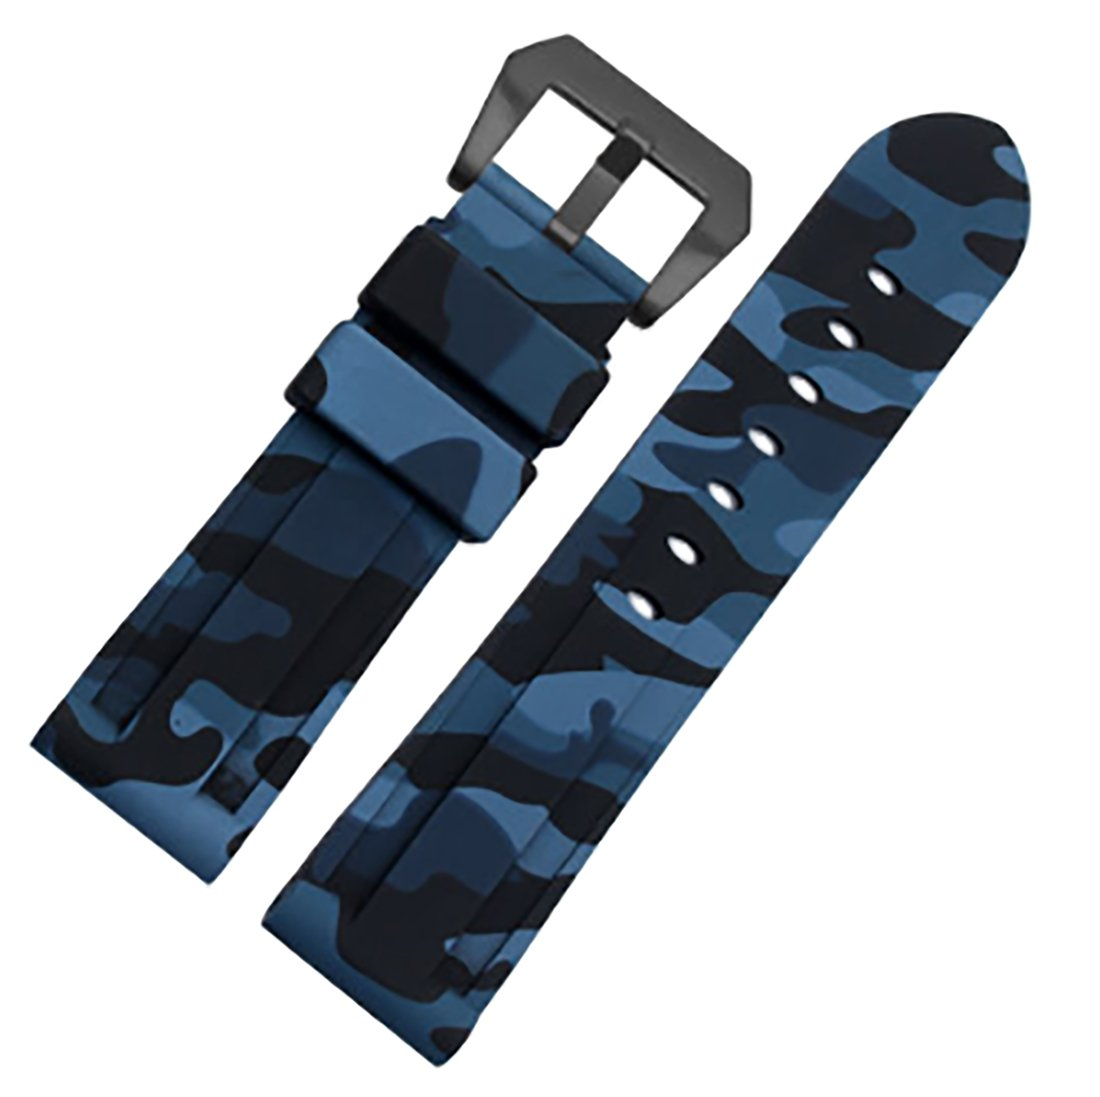 24mm Camouflage Diver Rubber Silicone Watch Band PVD Tang Buckle Strap Fits For Panerai Luminor (Blue(Black buckle))